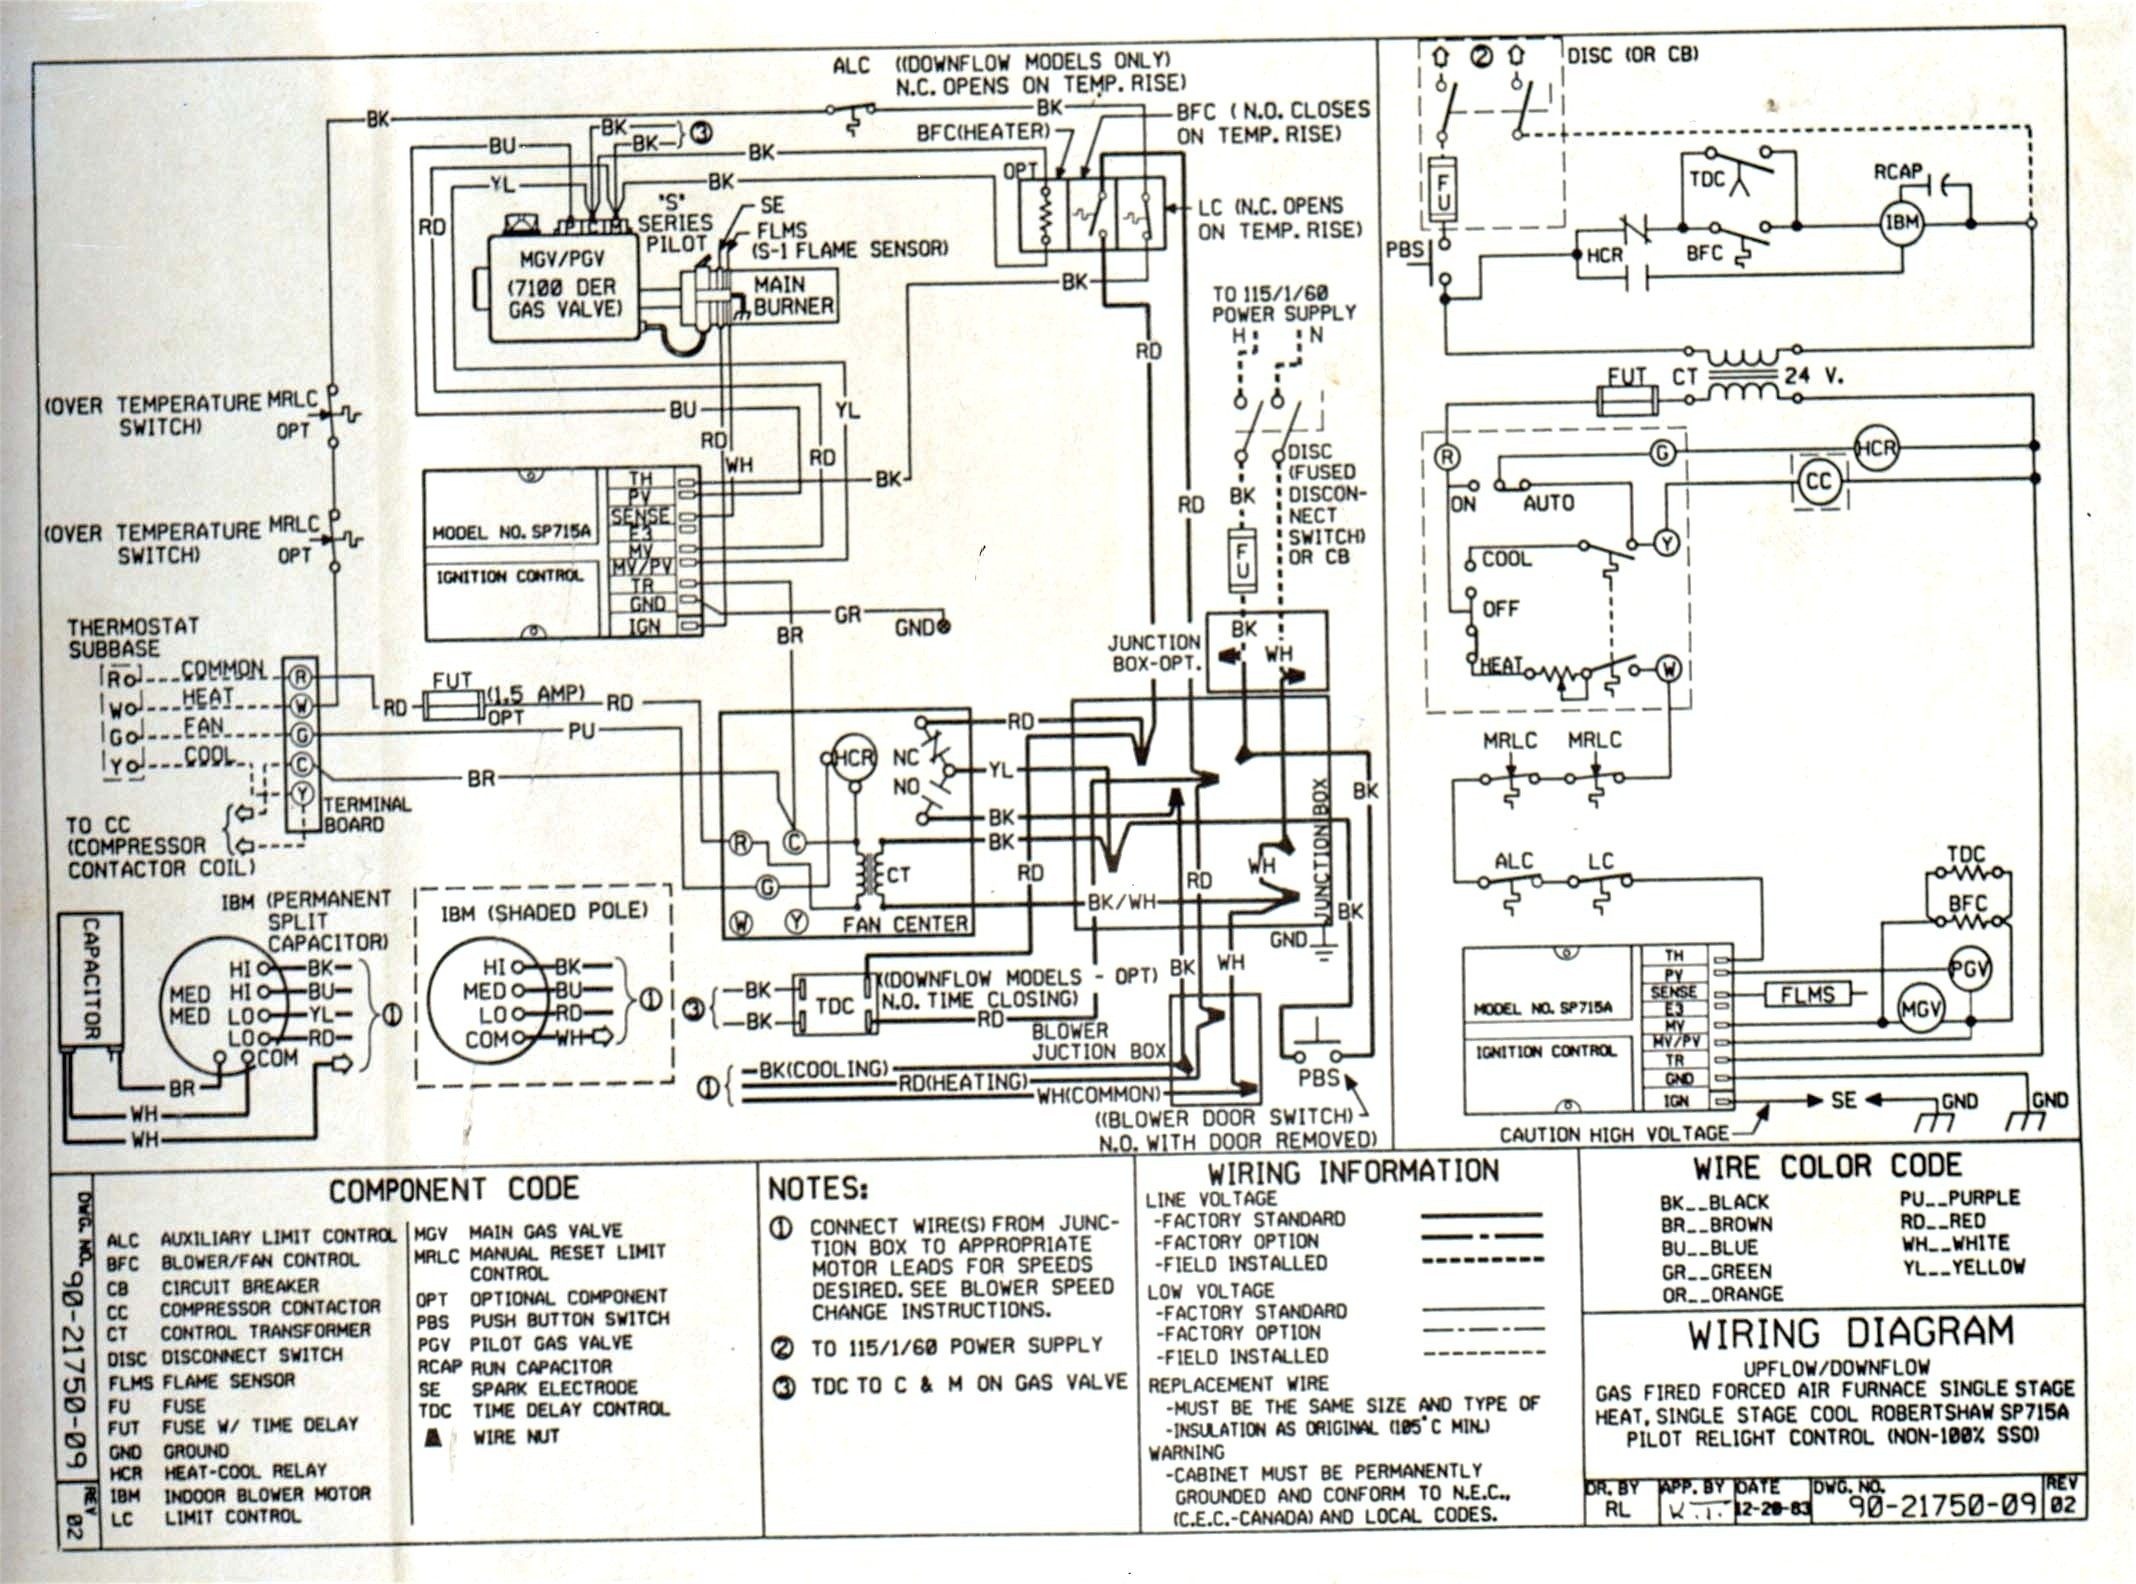 ac disconnect wiring diagram Collection-carrier ac wiring diagram Collection Wiring Diagram Ac Split Sanyo Fresh Wiring Diagram Indoor Ac 11-f